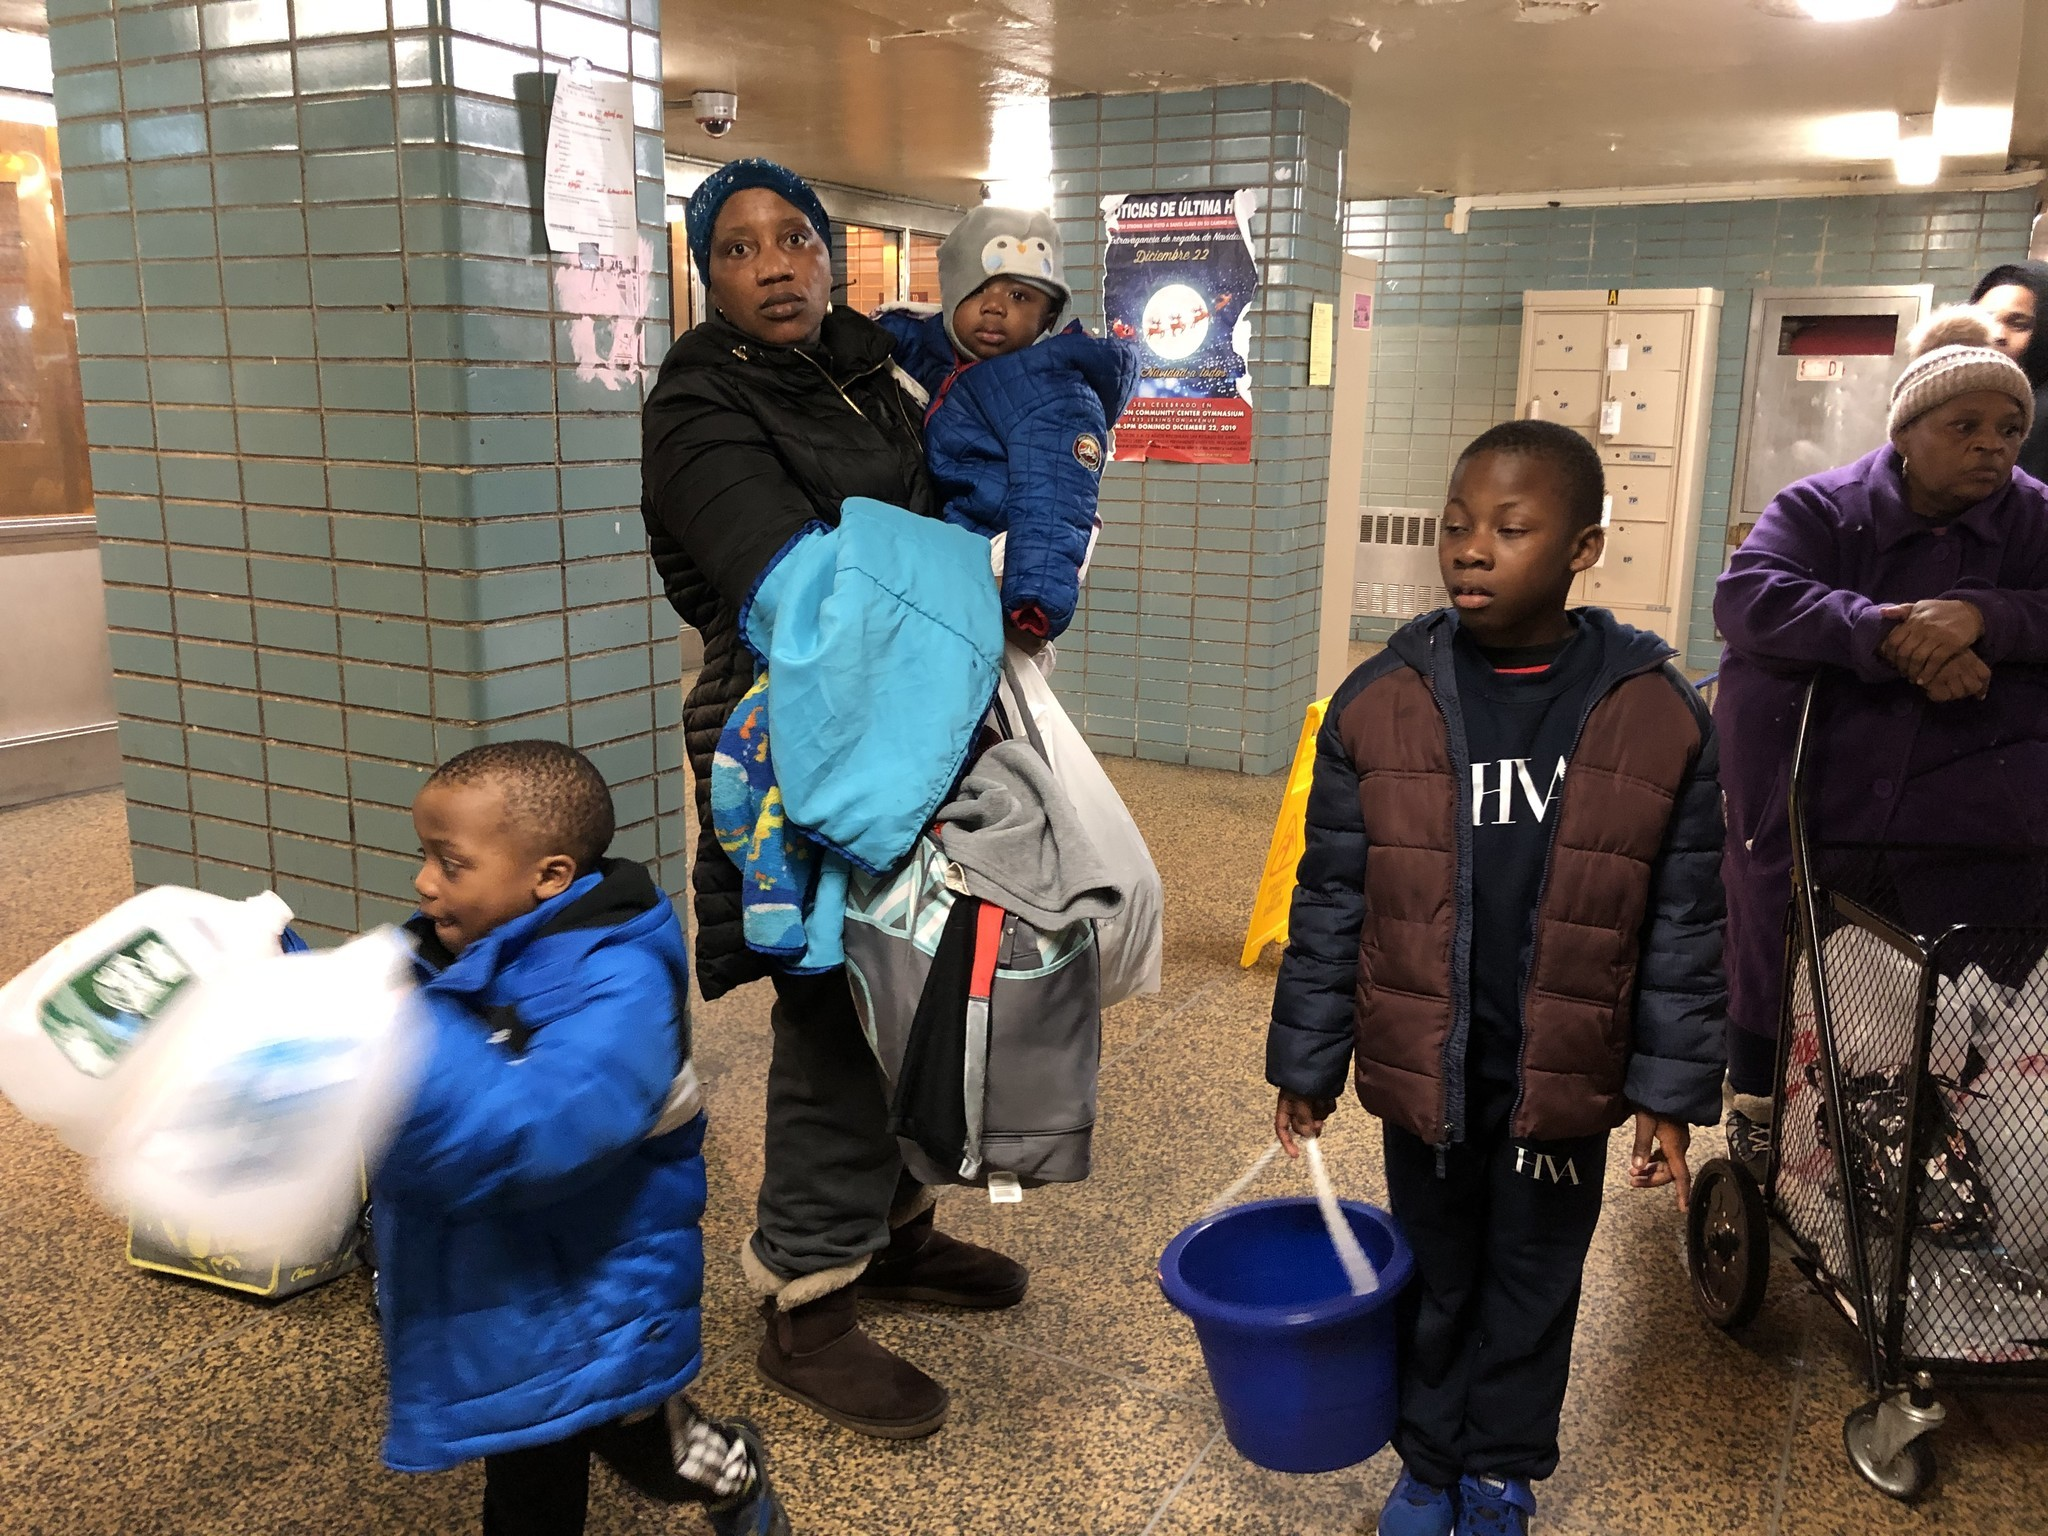 NYCHA's Taft Houses residents in Manhattan without water for days